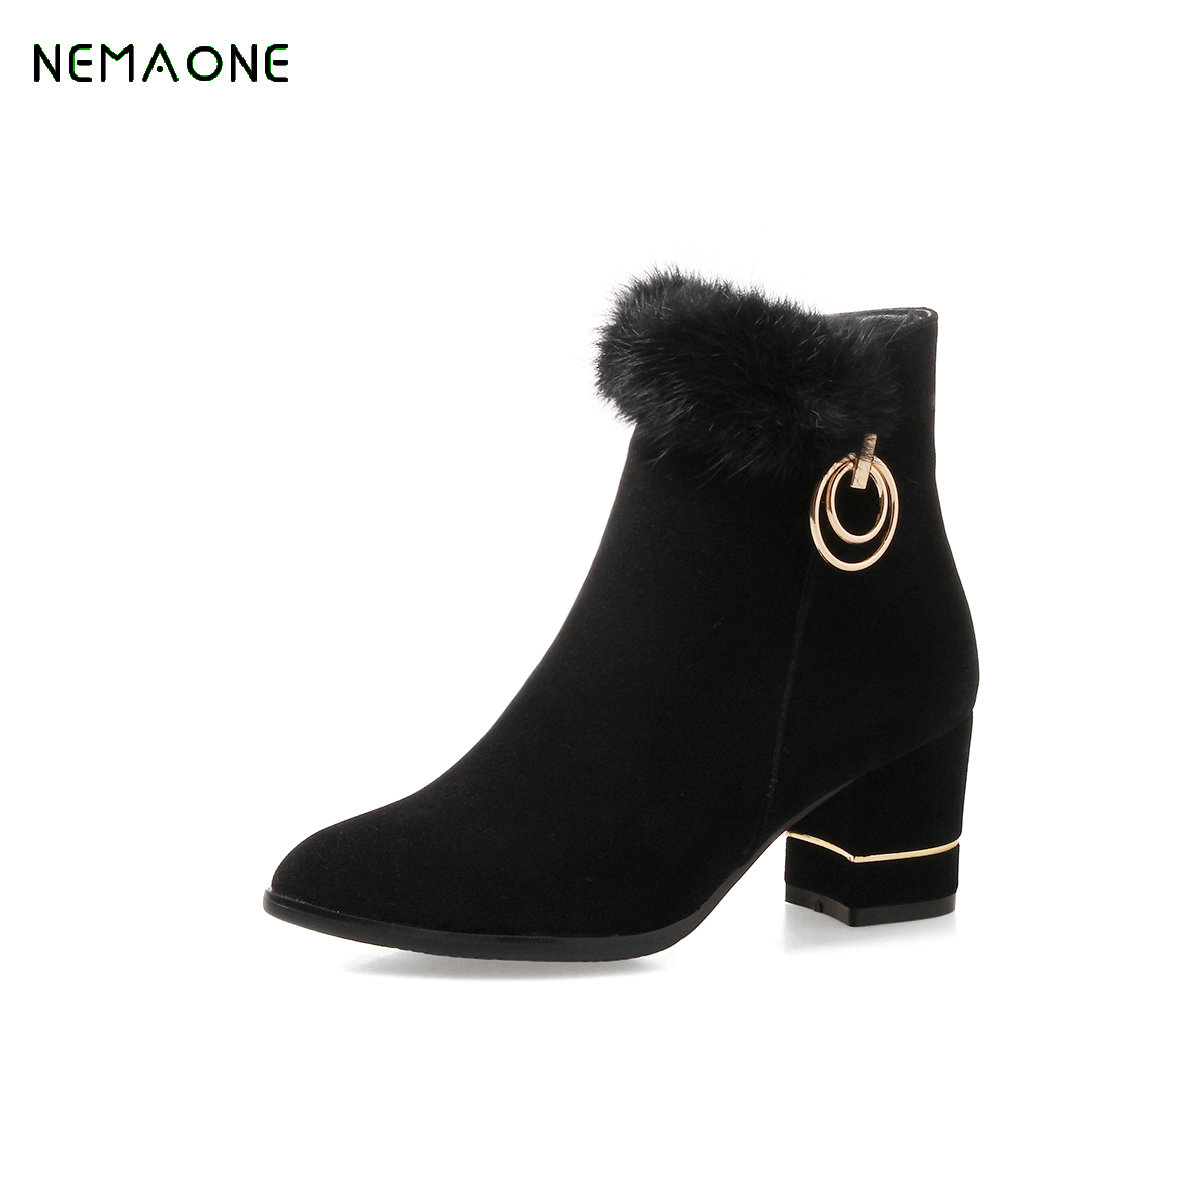 все цены на NEMAONE Fashion Black Martin Boots Women 2017 New Autumn Platform Shoes Woman Party Ankle Boots High Heels